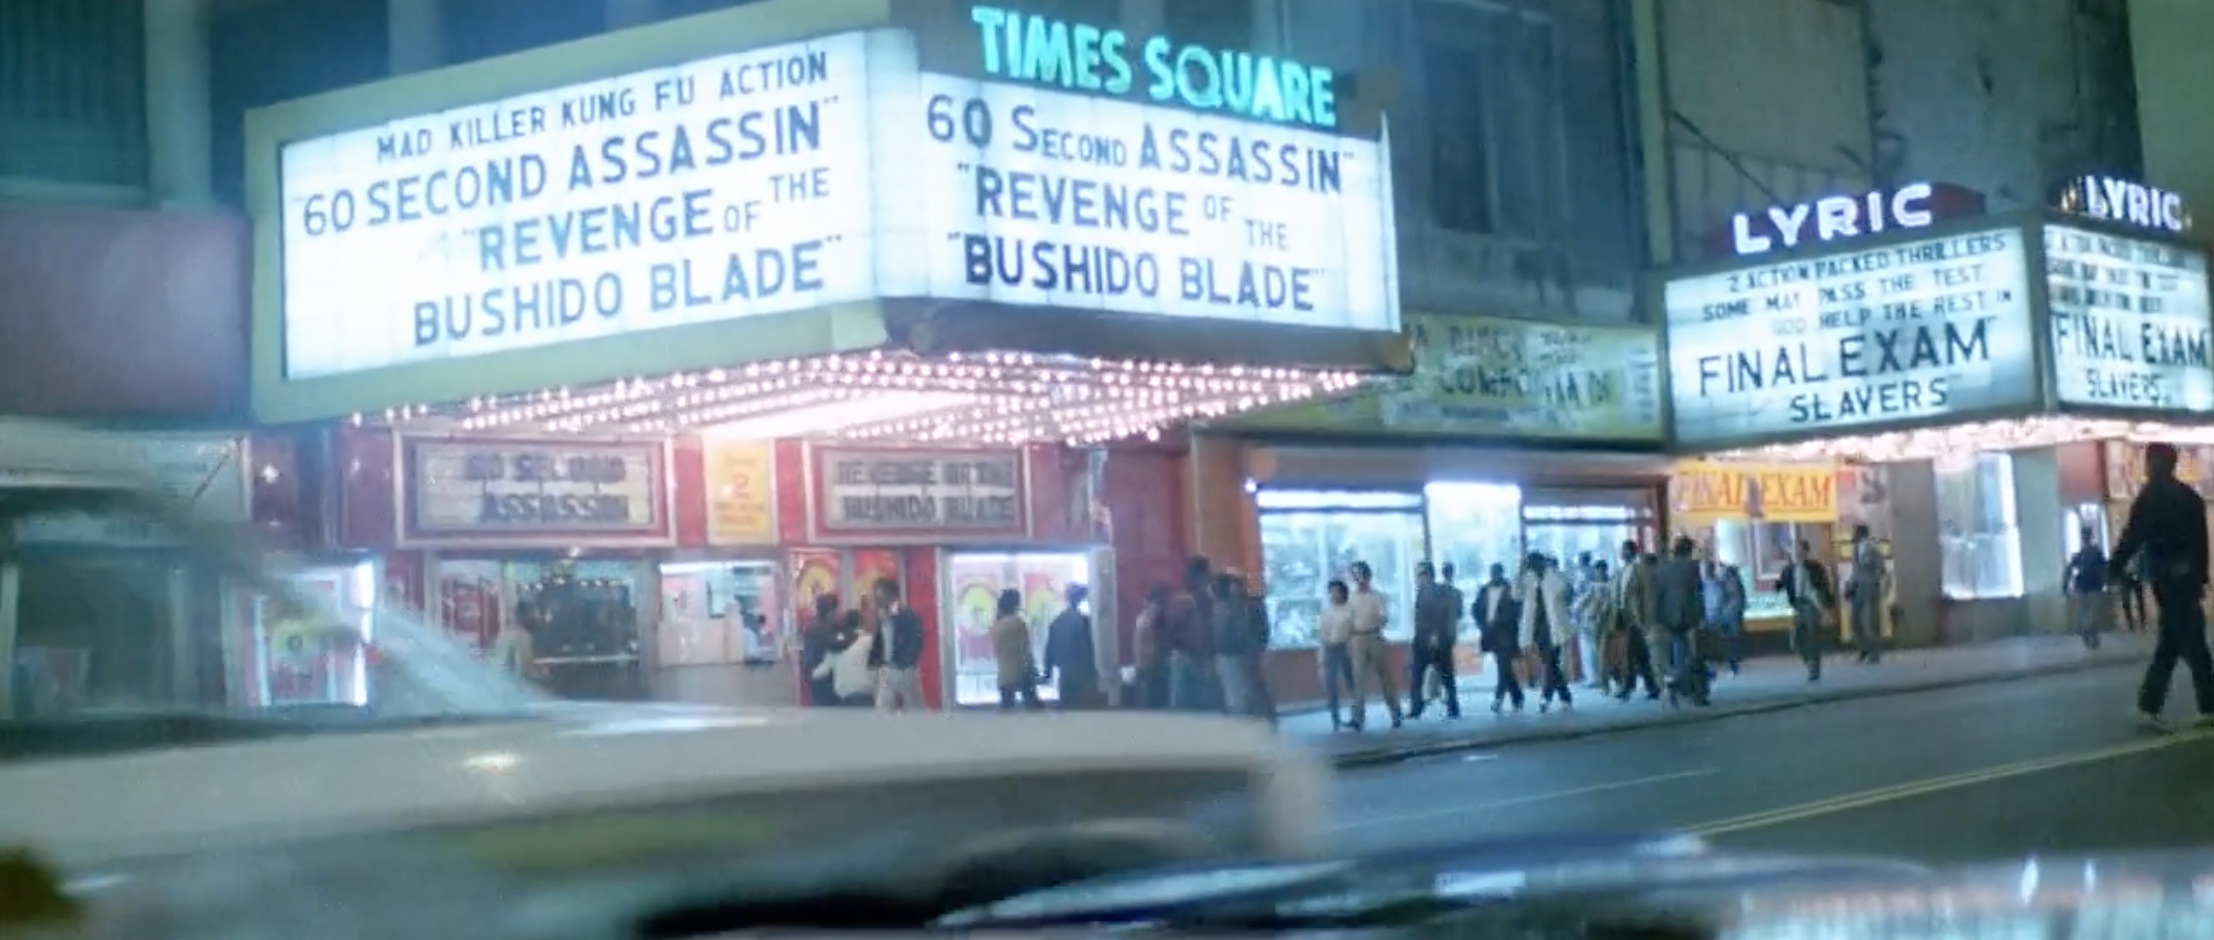 Times Square 1982, The New York Ripper